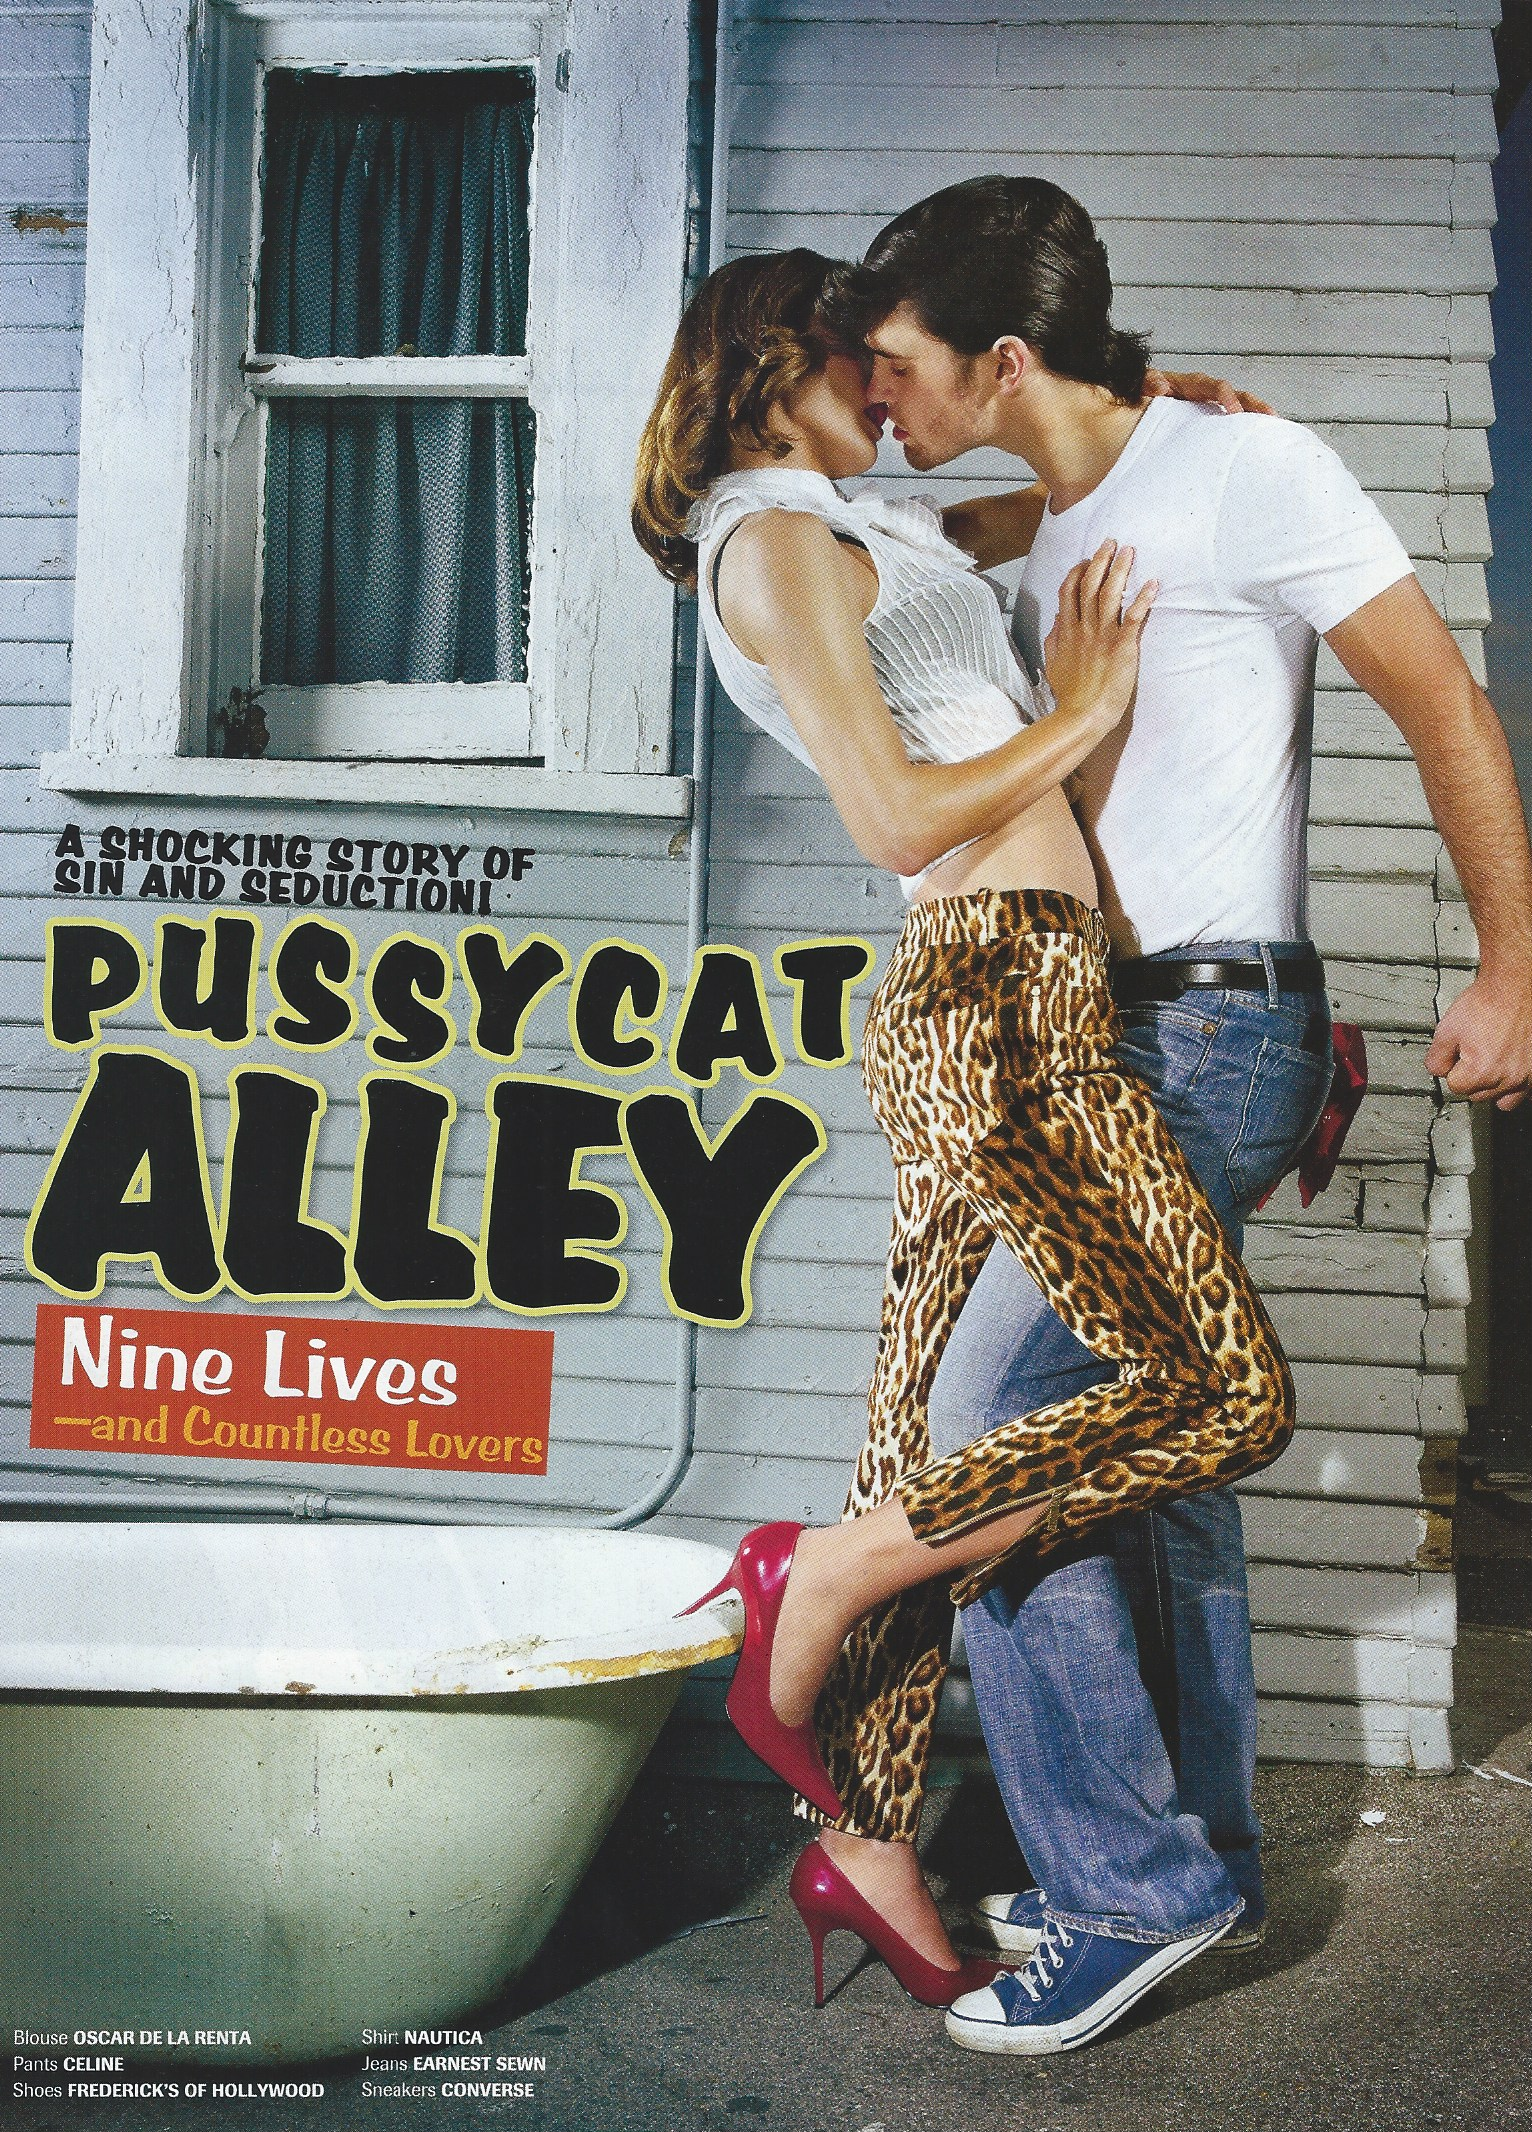 Pussycat Alley